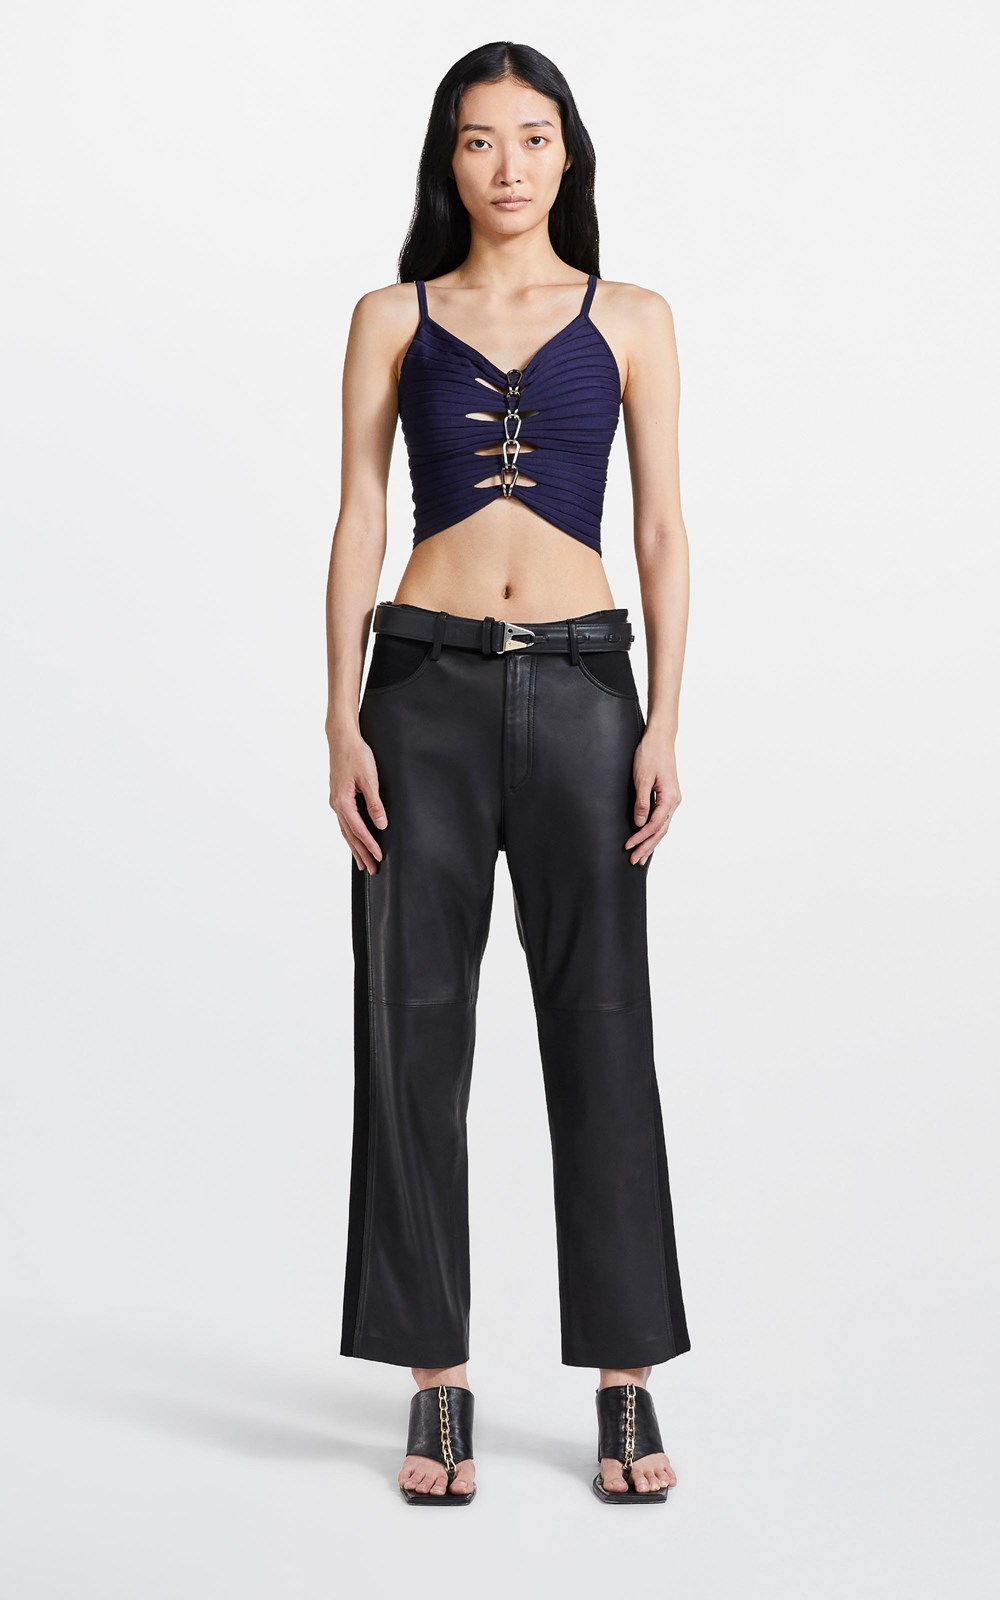 New    CENTRAL CHAIN CAMI TOP